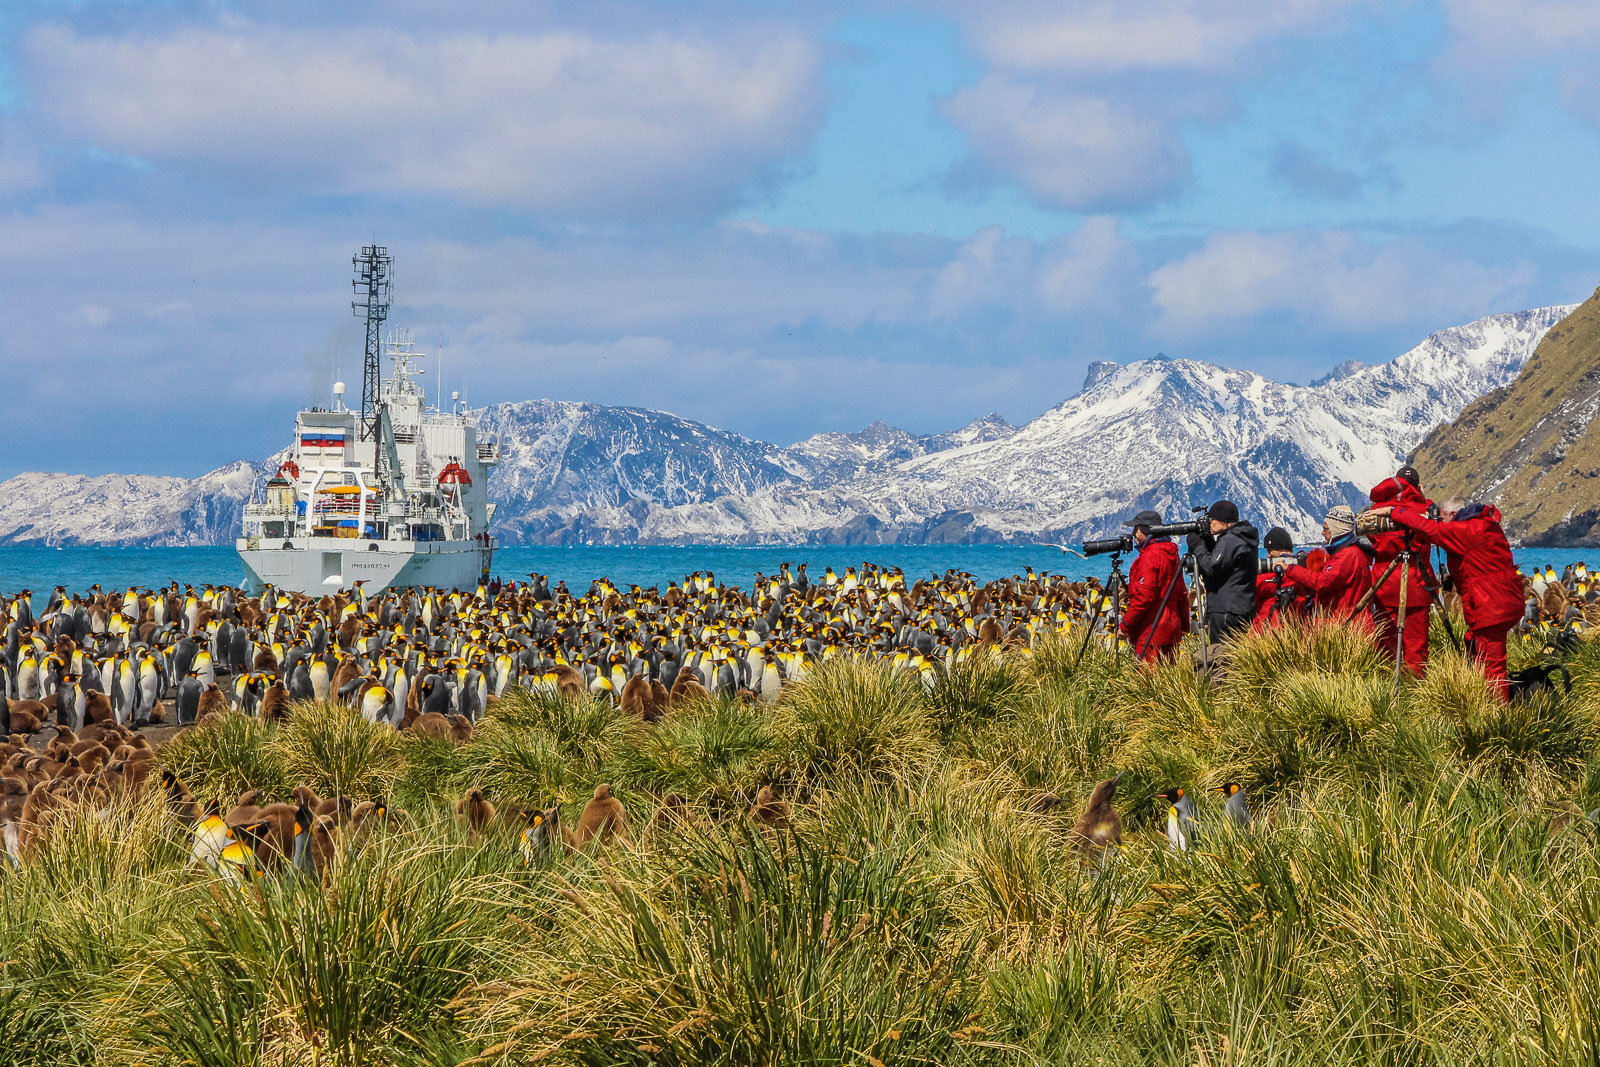 Frans Lanting and workshop participants photograping King Penguins, Gold Harbour, South Georgia Island, Antarctica